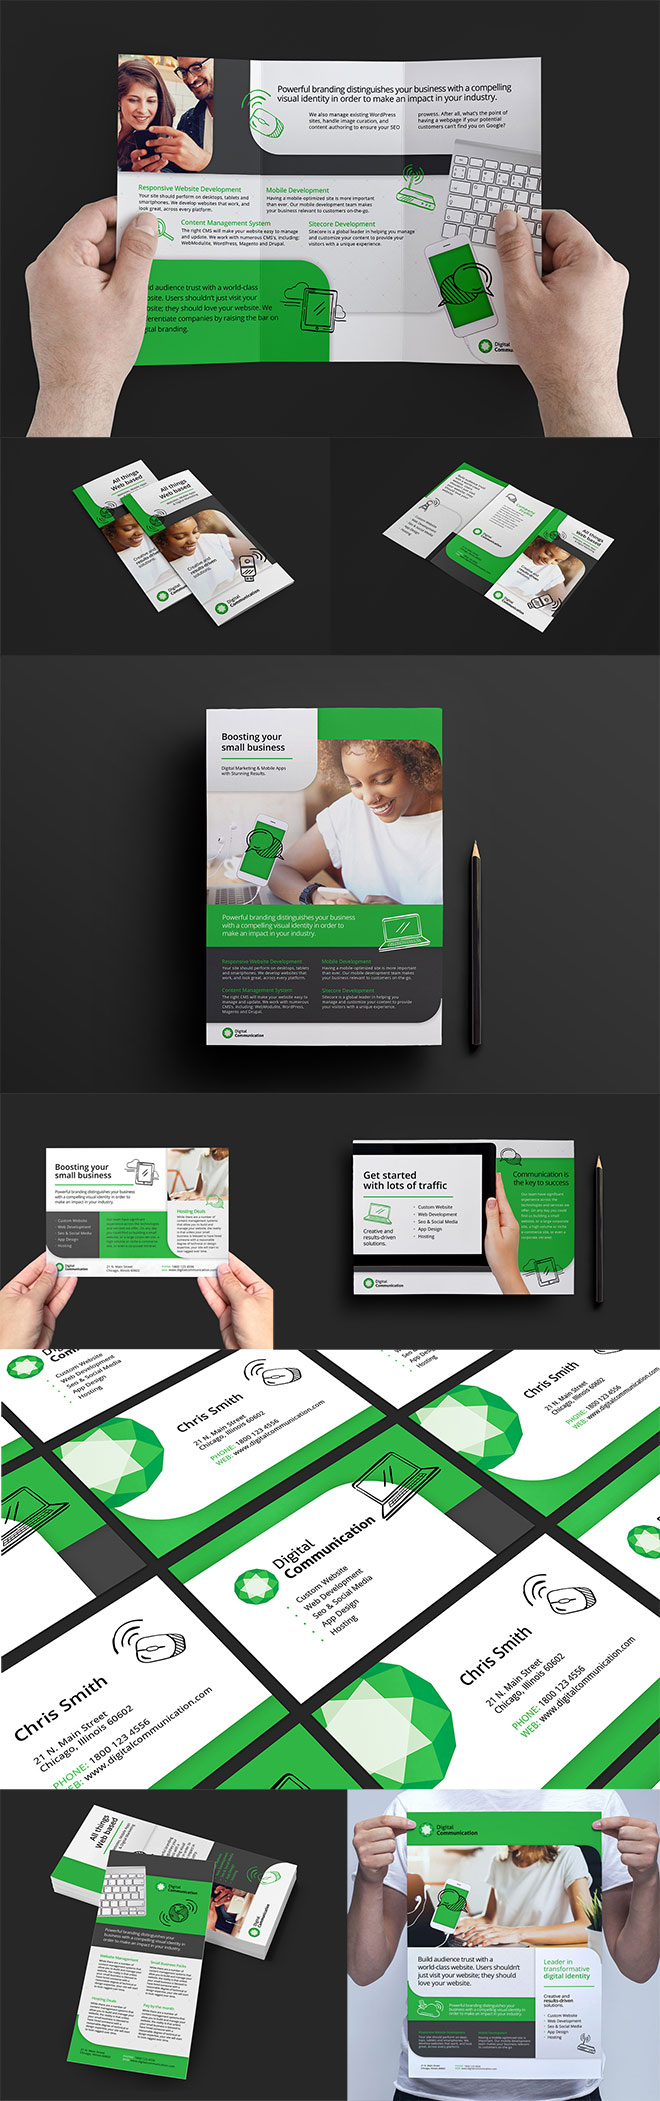 BrandPacks Web Design Series